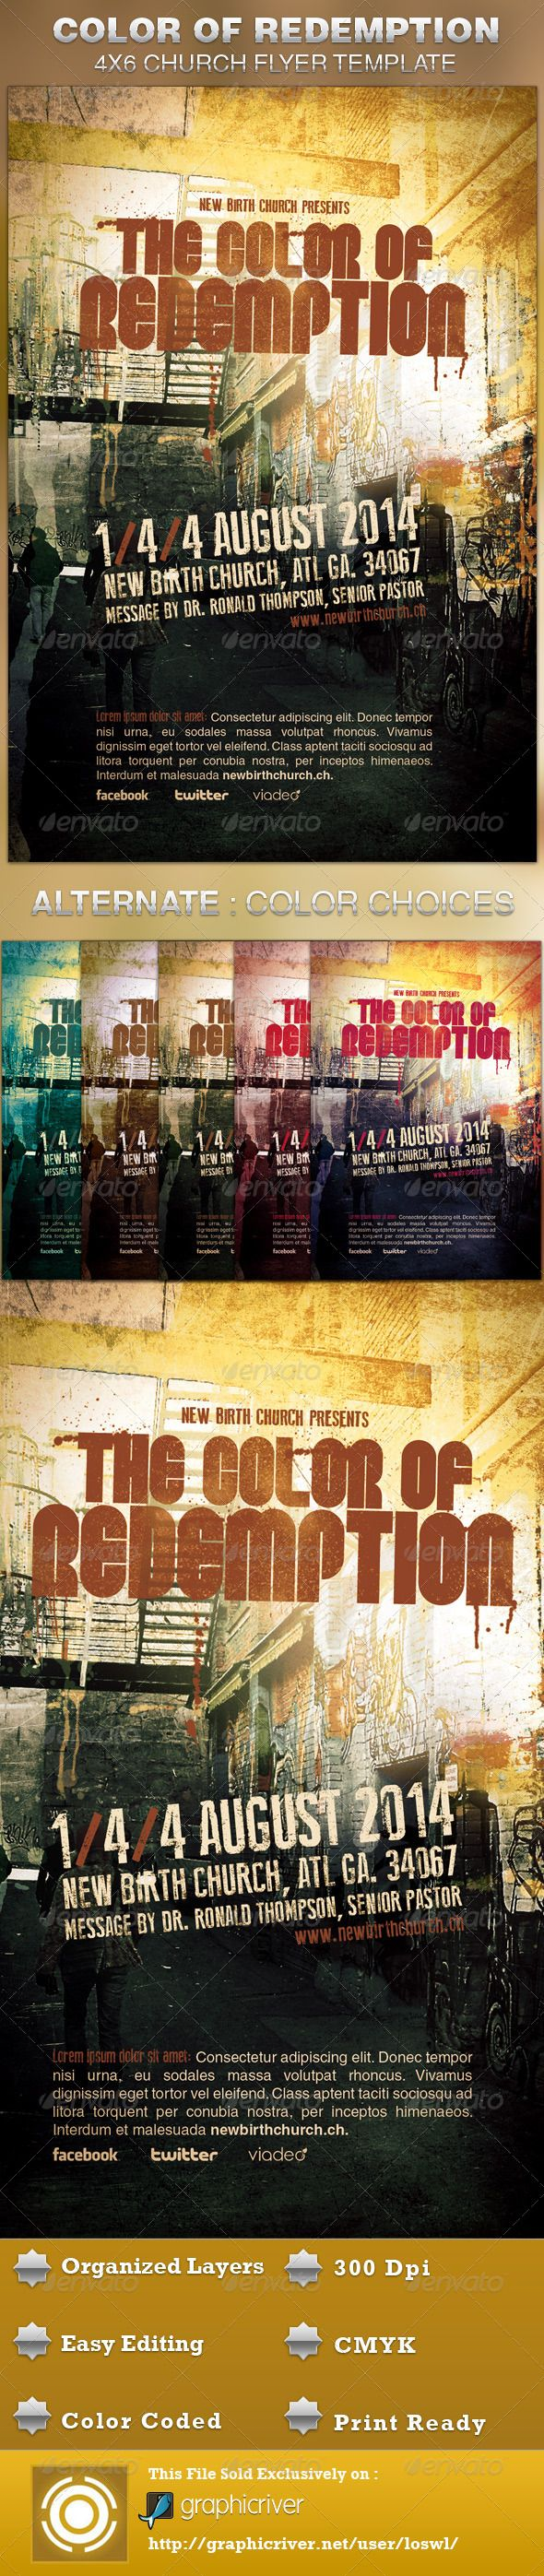 The Color of Redemption Church Flyer Template is great for any Church Event. Use it for Gospel Concerts, Pageants, Musical Events and Sermons, etc. The layered Photoshop files are color coded and organized in folders for easy editing. The file also contains 6 – One Click Color options.$6.00